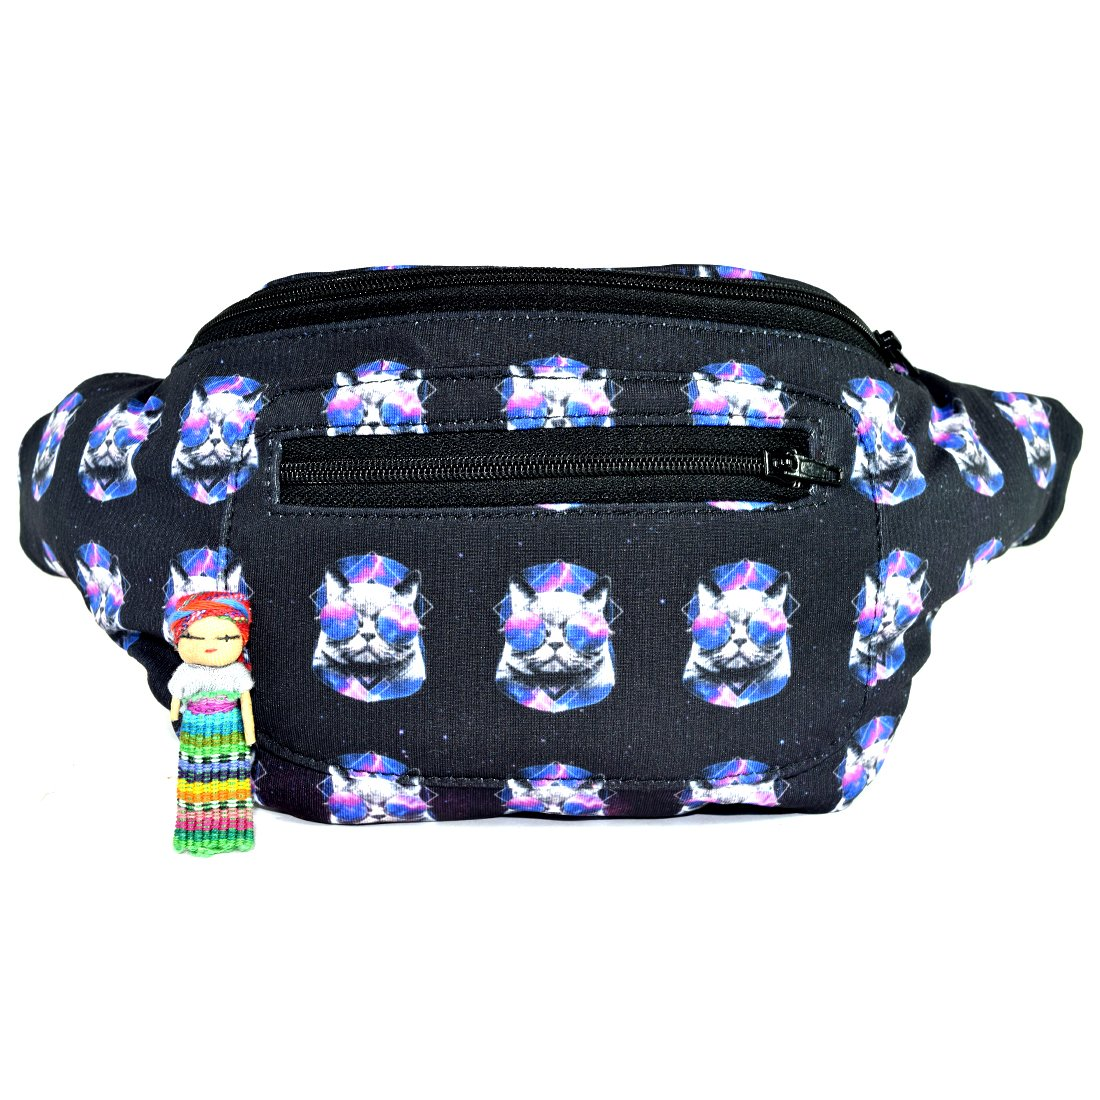 Galaxy Cat Fanny Pack, Boho Chic Handmade w/Hidden Pocket (Spaced Out Cats)